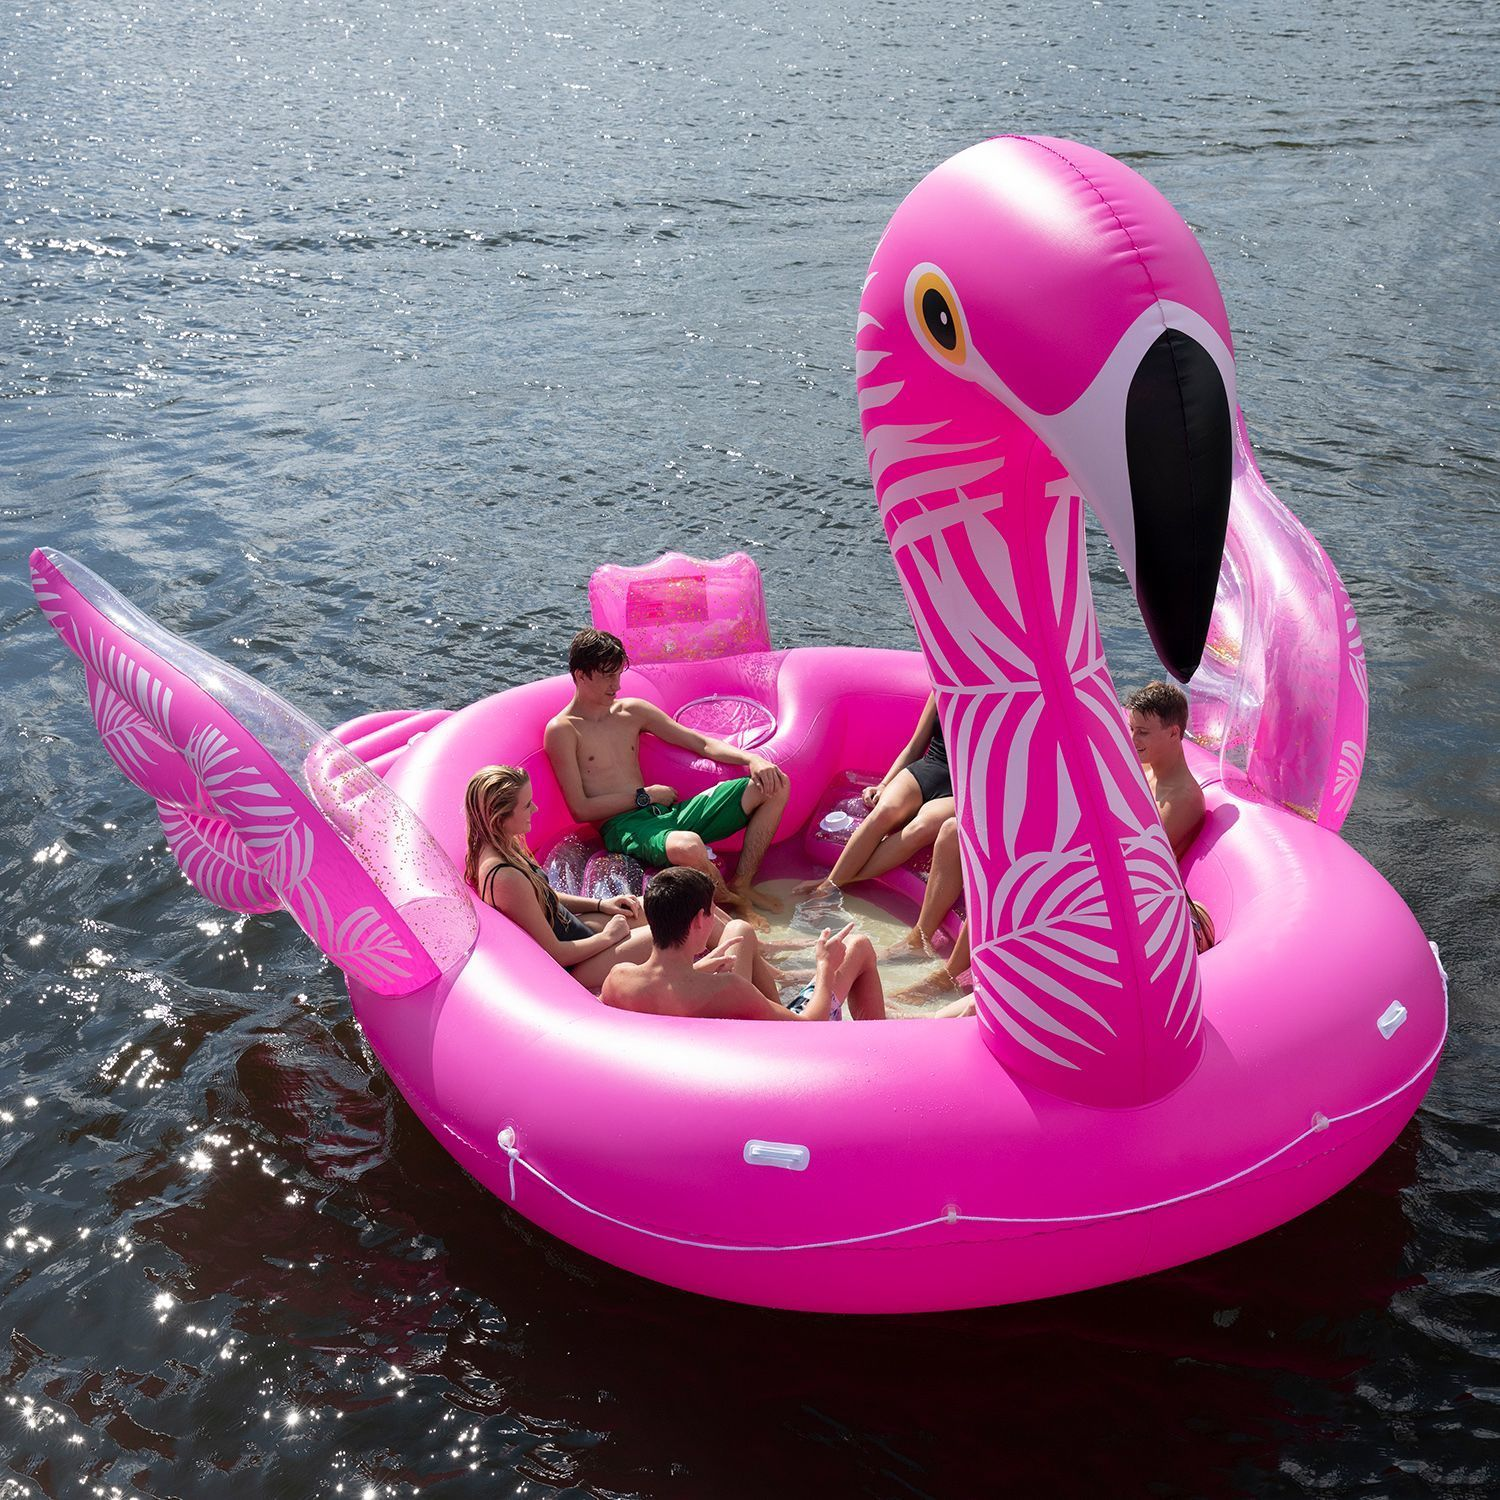 This Massive Glittery Flamingo Float Seats 6 People